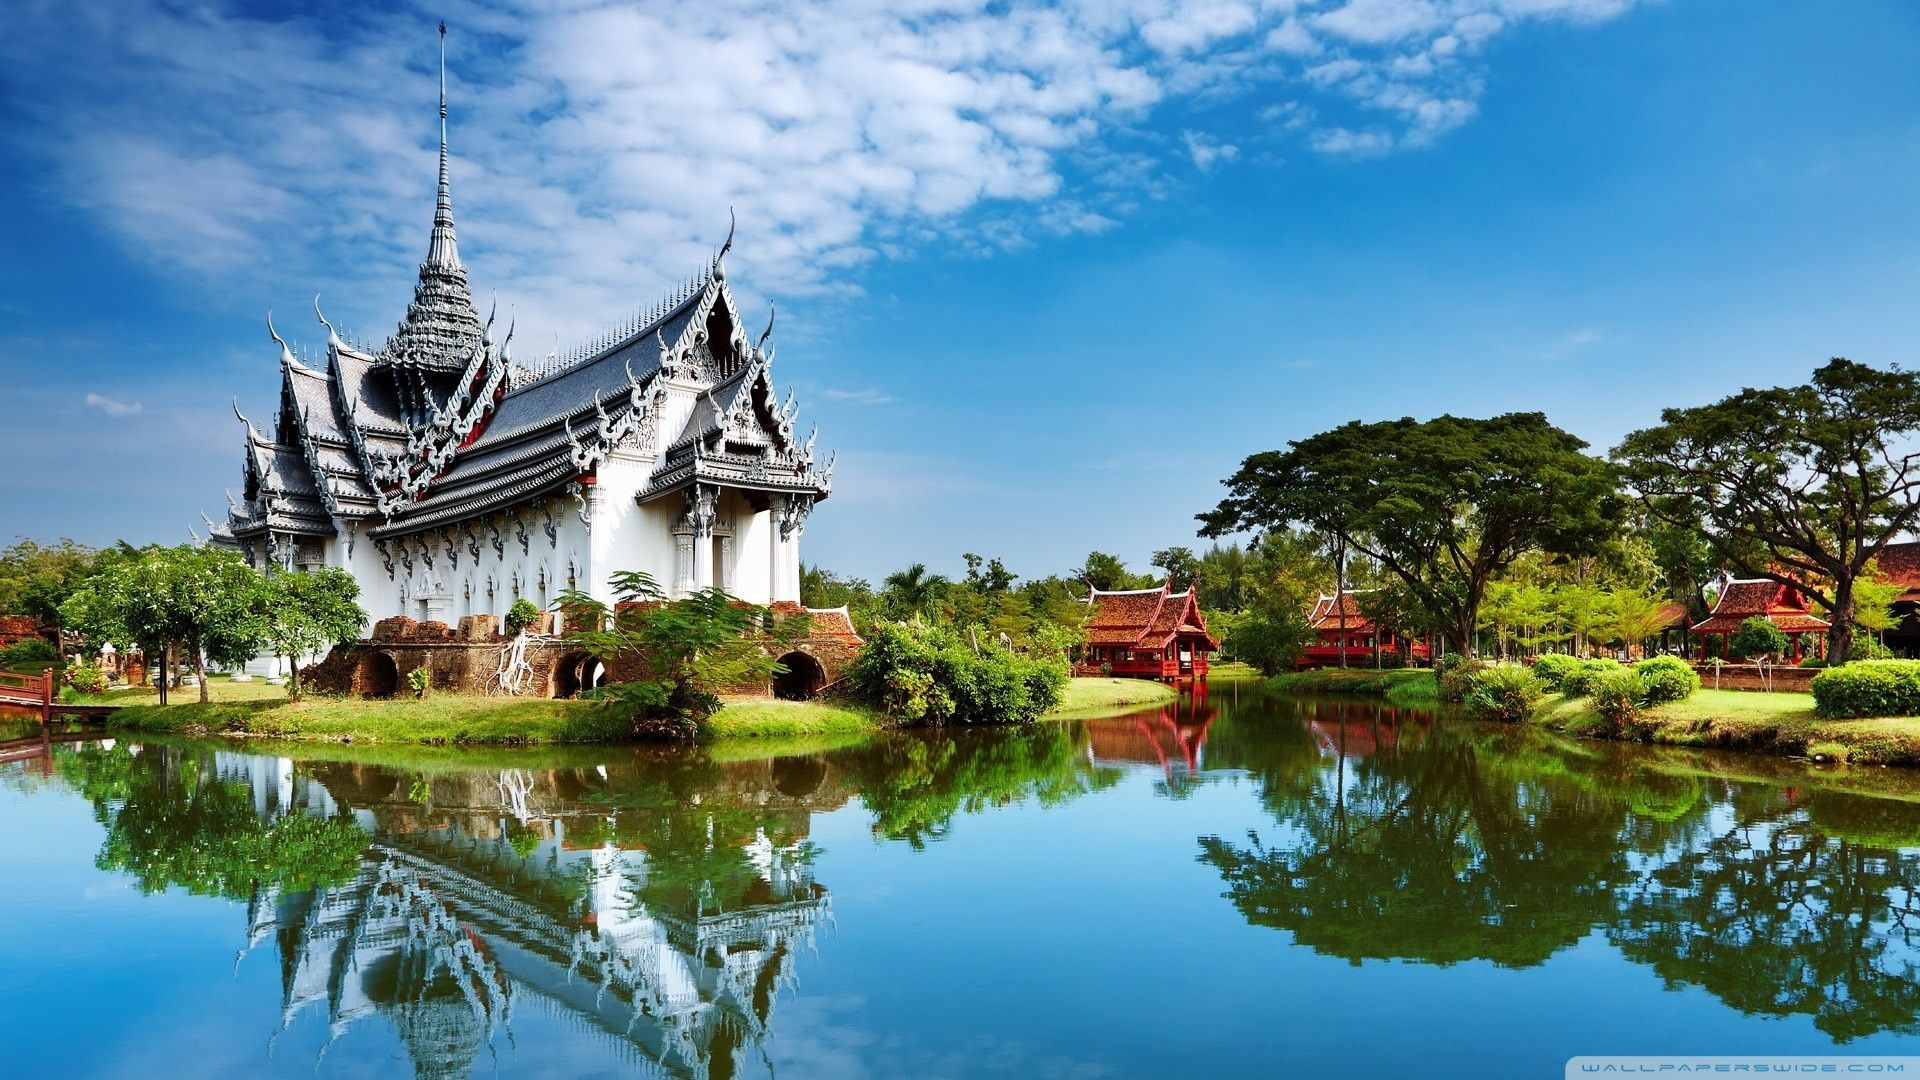 Asia HD Wallpapers   Top Asia HD Backgrounds   WallpaperAccess 1920x1080